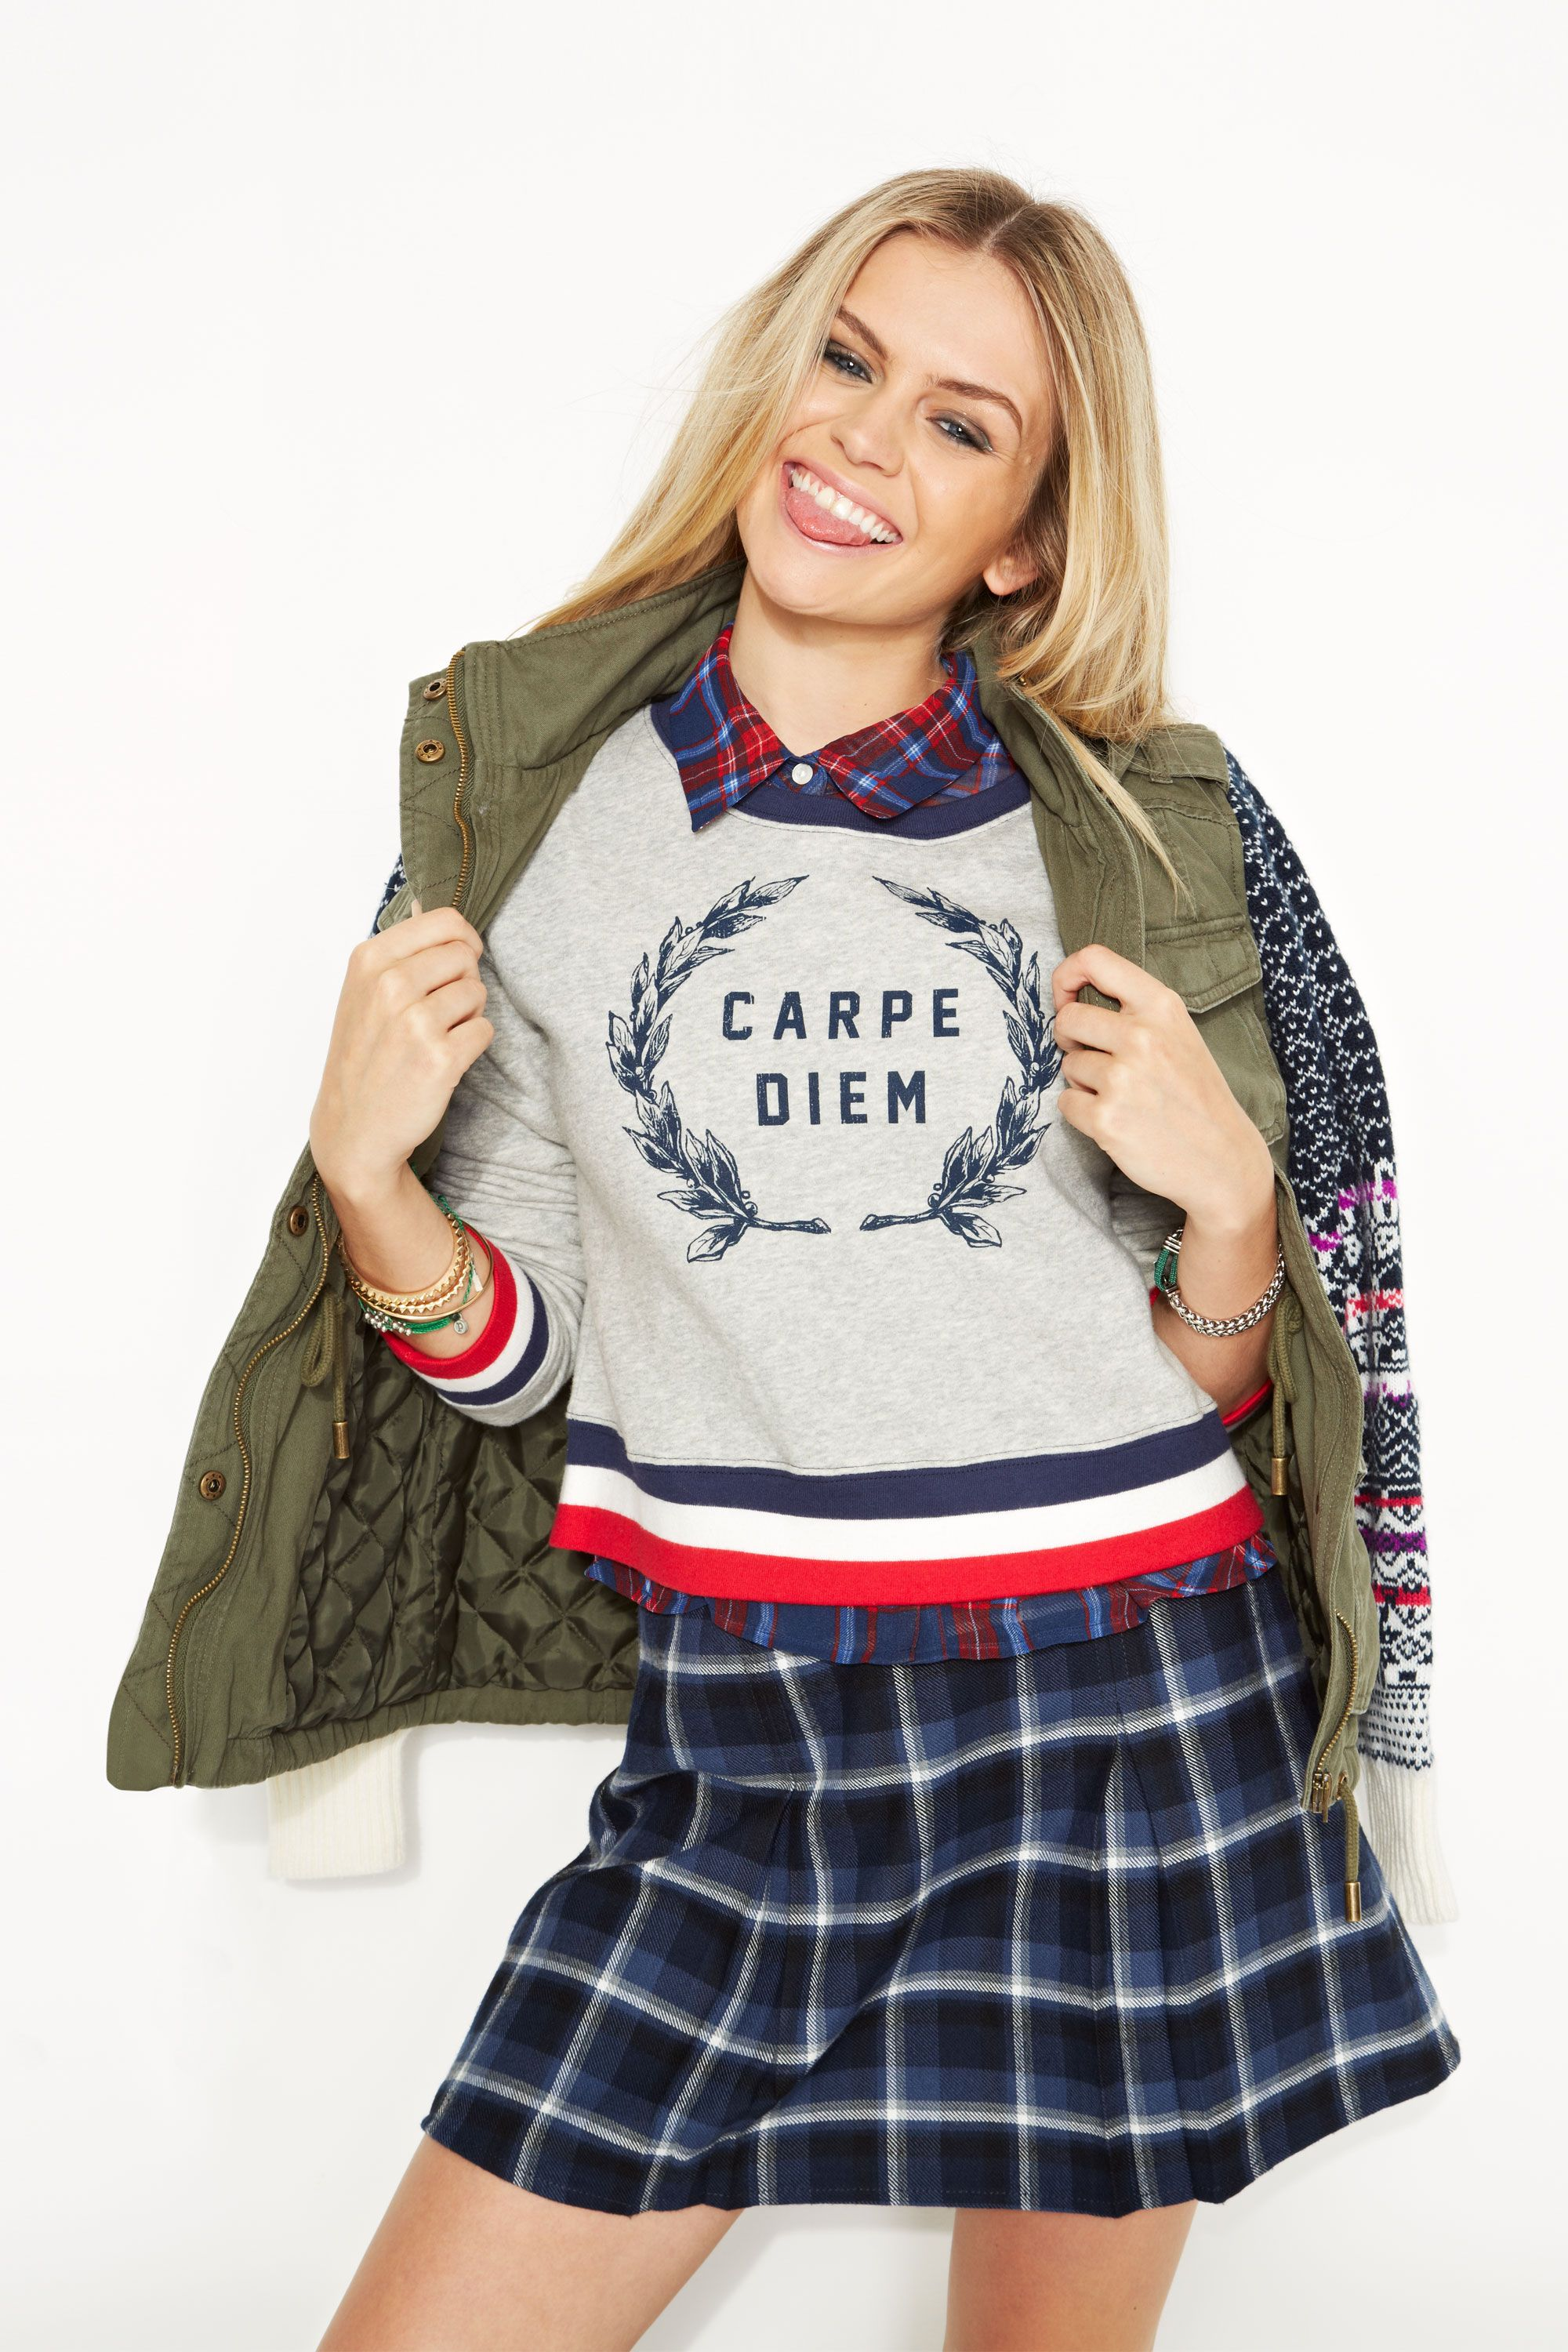 5d19b1216c 30+ Cute Back to School Outfits for Fall 2018 - What to Wear to School